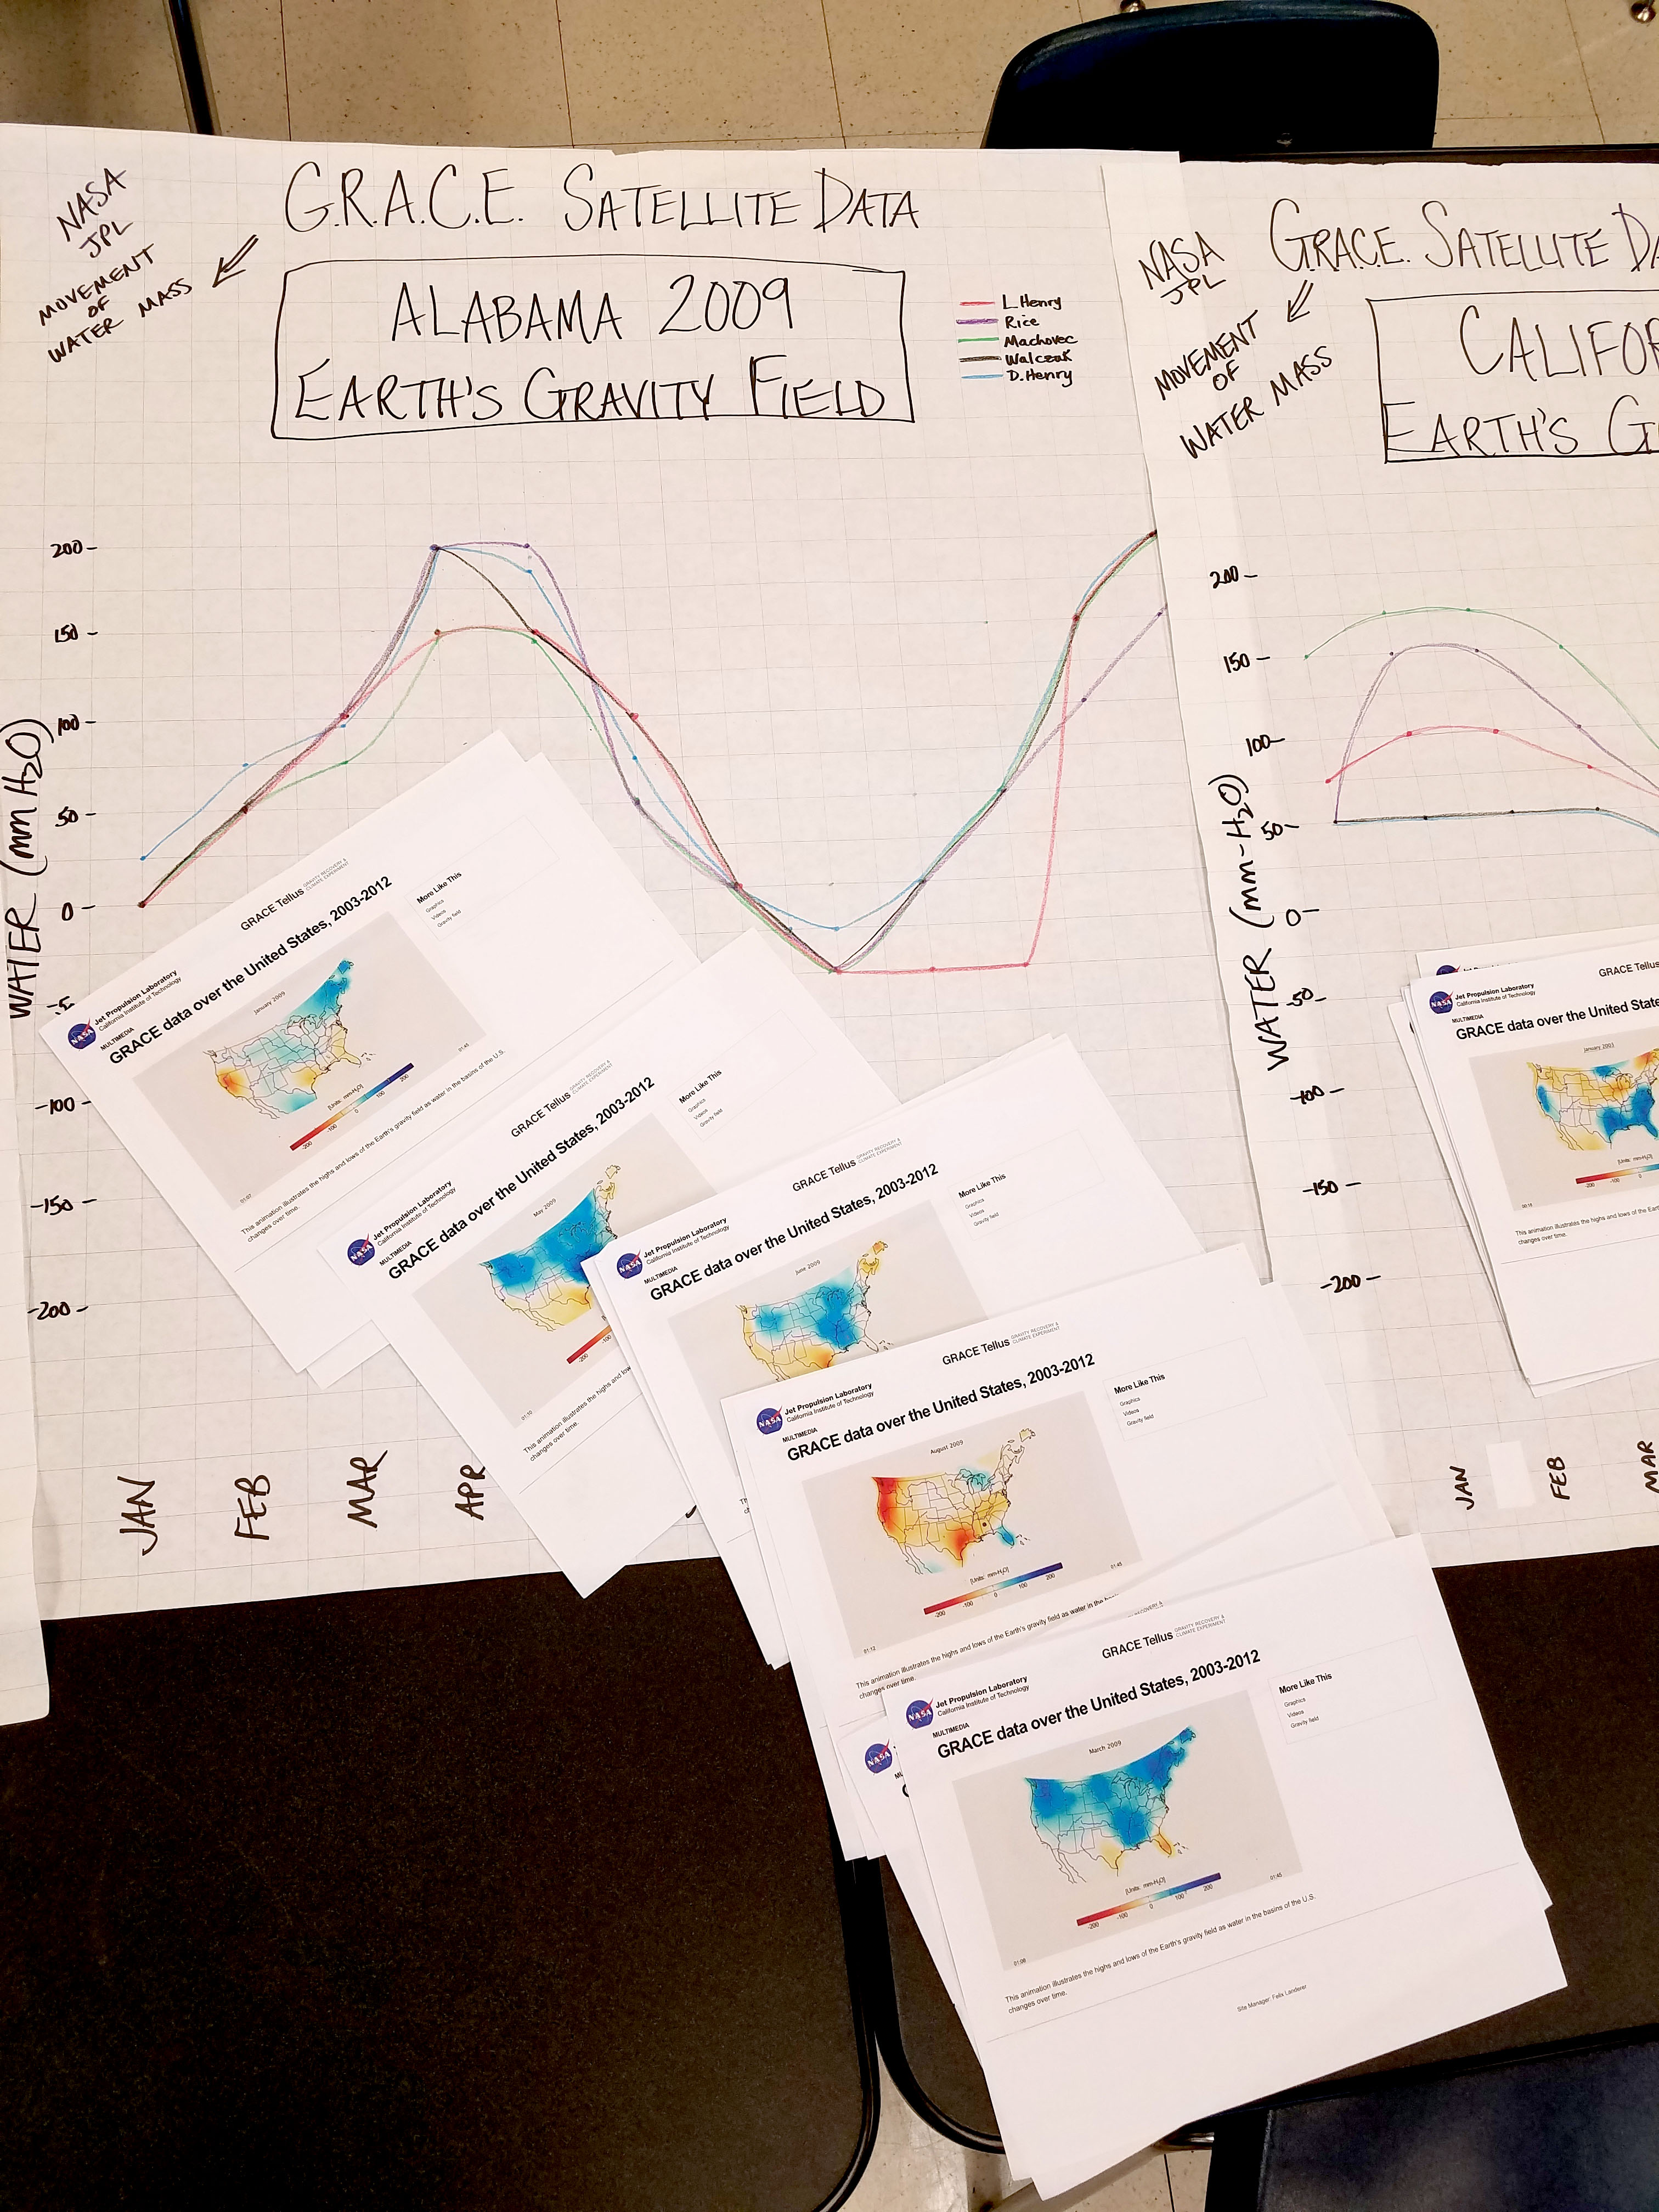 Students plot changes in Earth's gravitational field using data from NASA's GRACE mission.